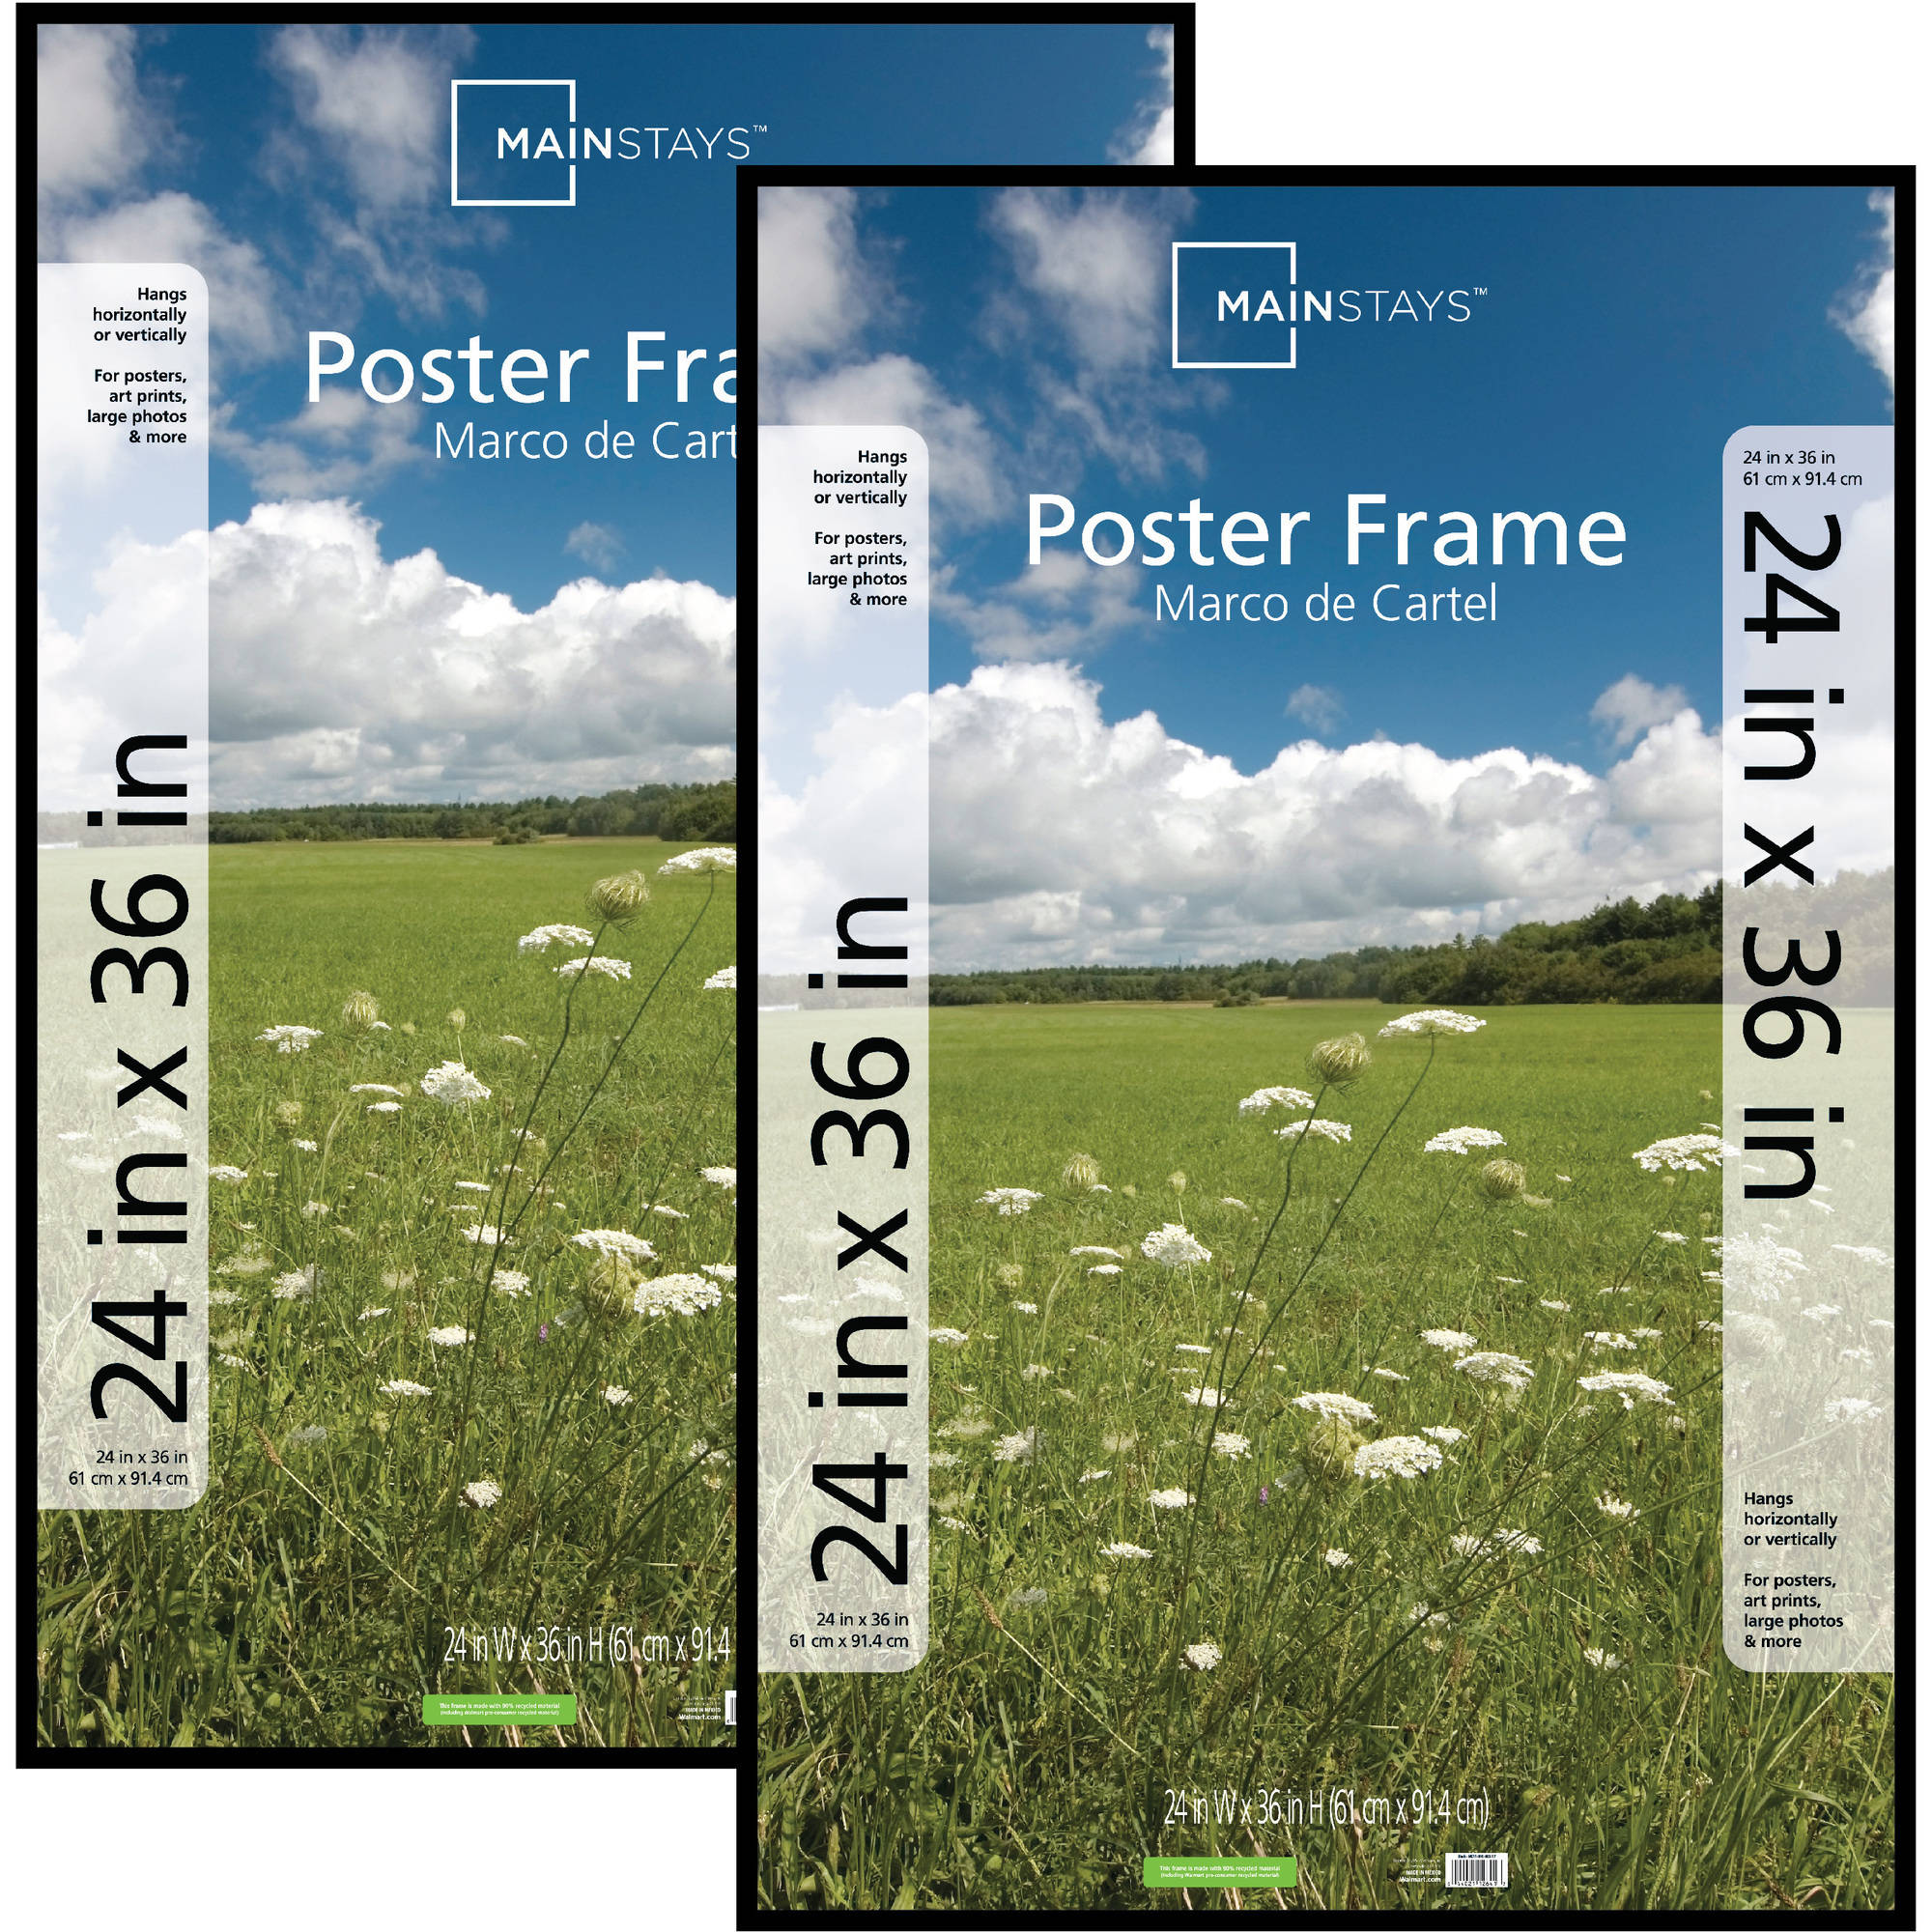 Mainstays 24x36 Basic Poster & Picture Frame, Black, Set of 2